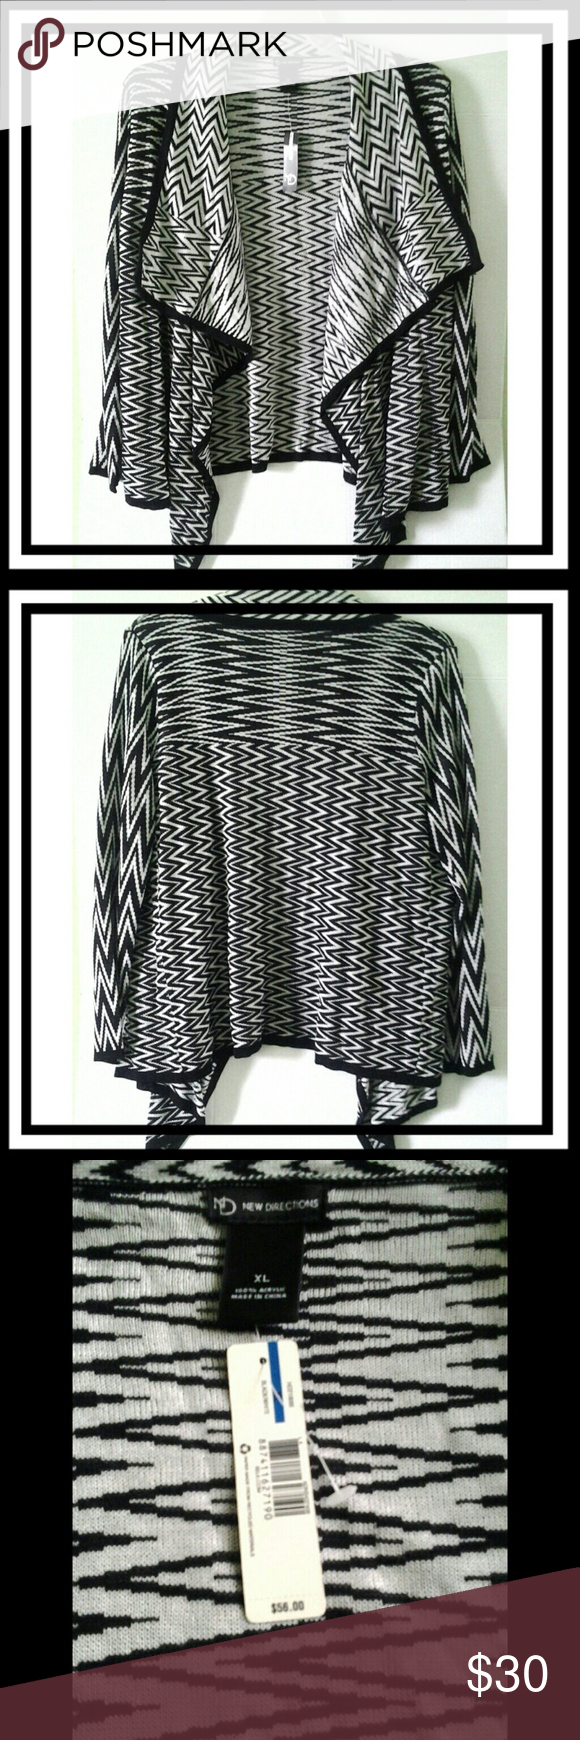 New Directions Cardigan Beautiful black & white, long sleeve cardigan.  Good condition, has never been worn as it fits small. New Directions Sweaters Cardigans